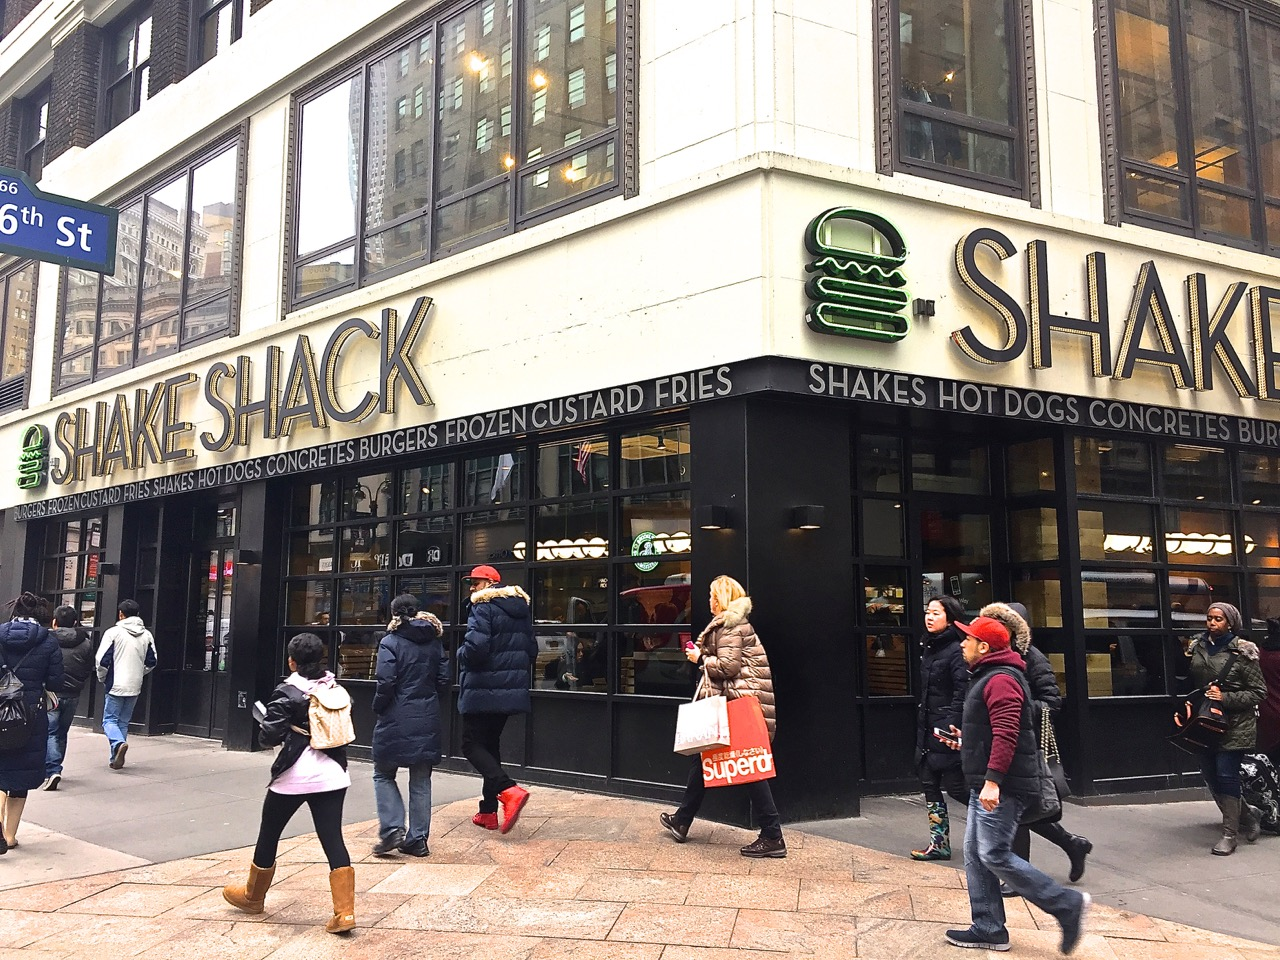 Shake Shack - Herald Square, NYC - Impact Storefront Designs